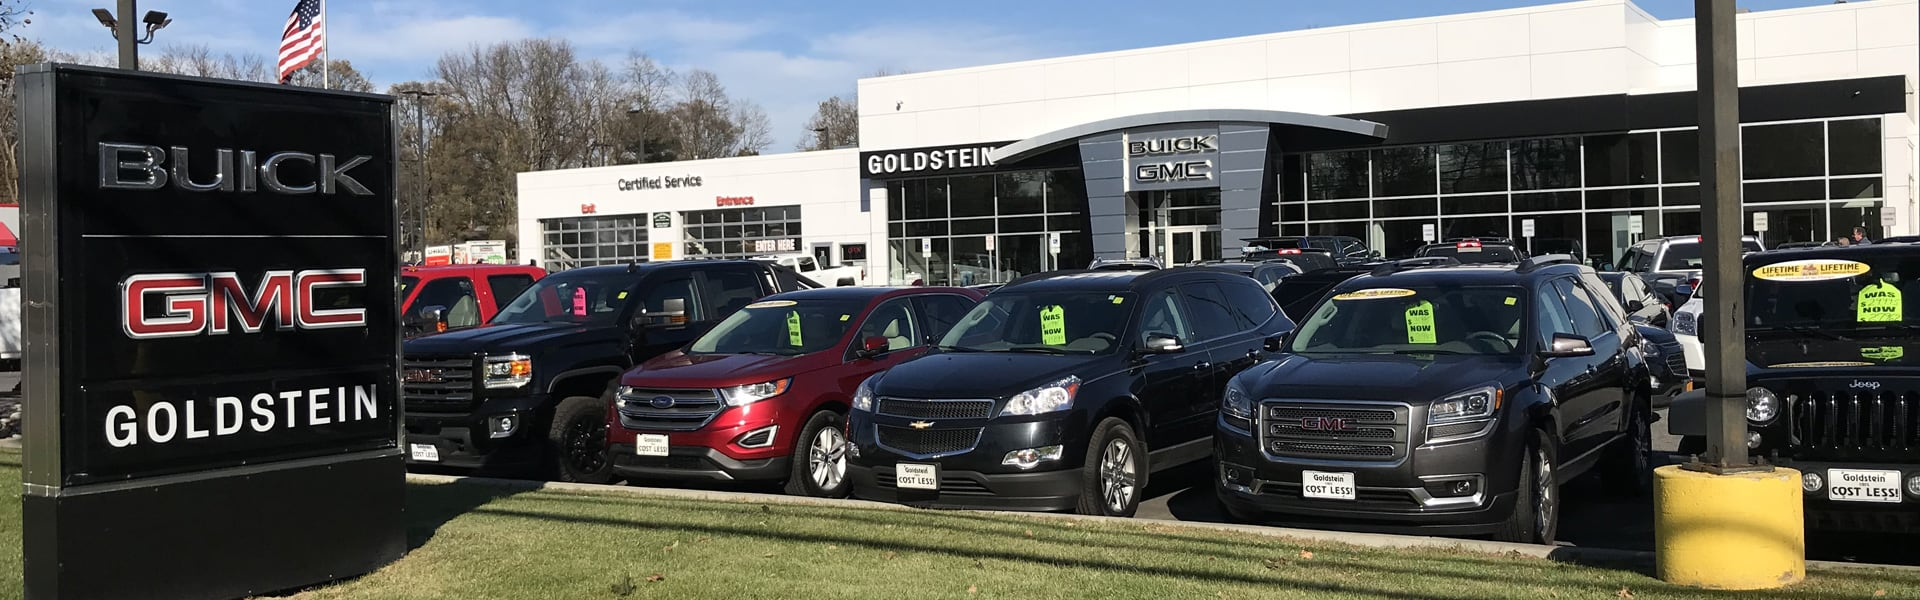 Gmc Dealer Near Me >> Car Dealership Albany Ny Goldstein Buick Gmc